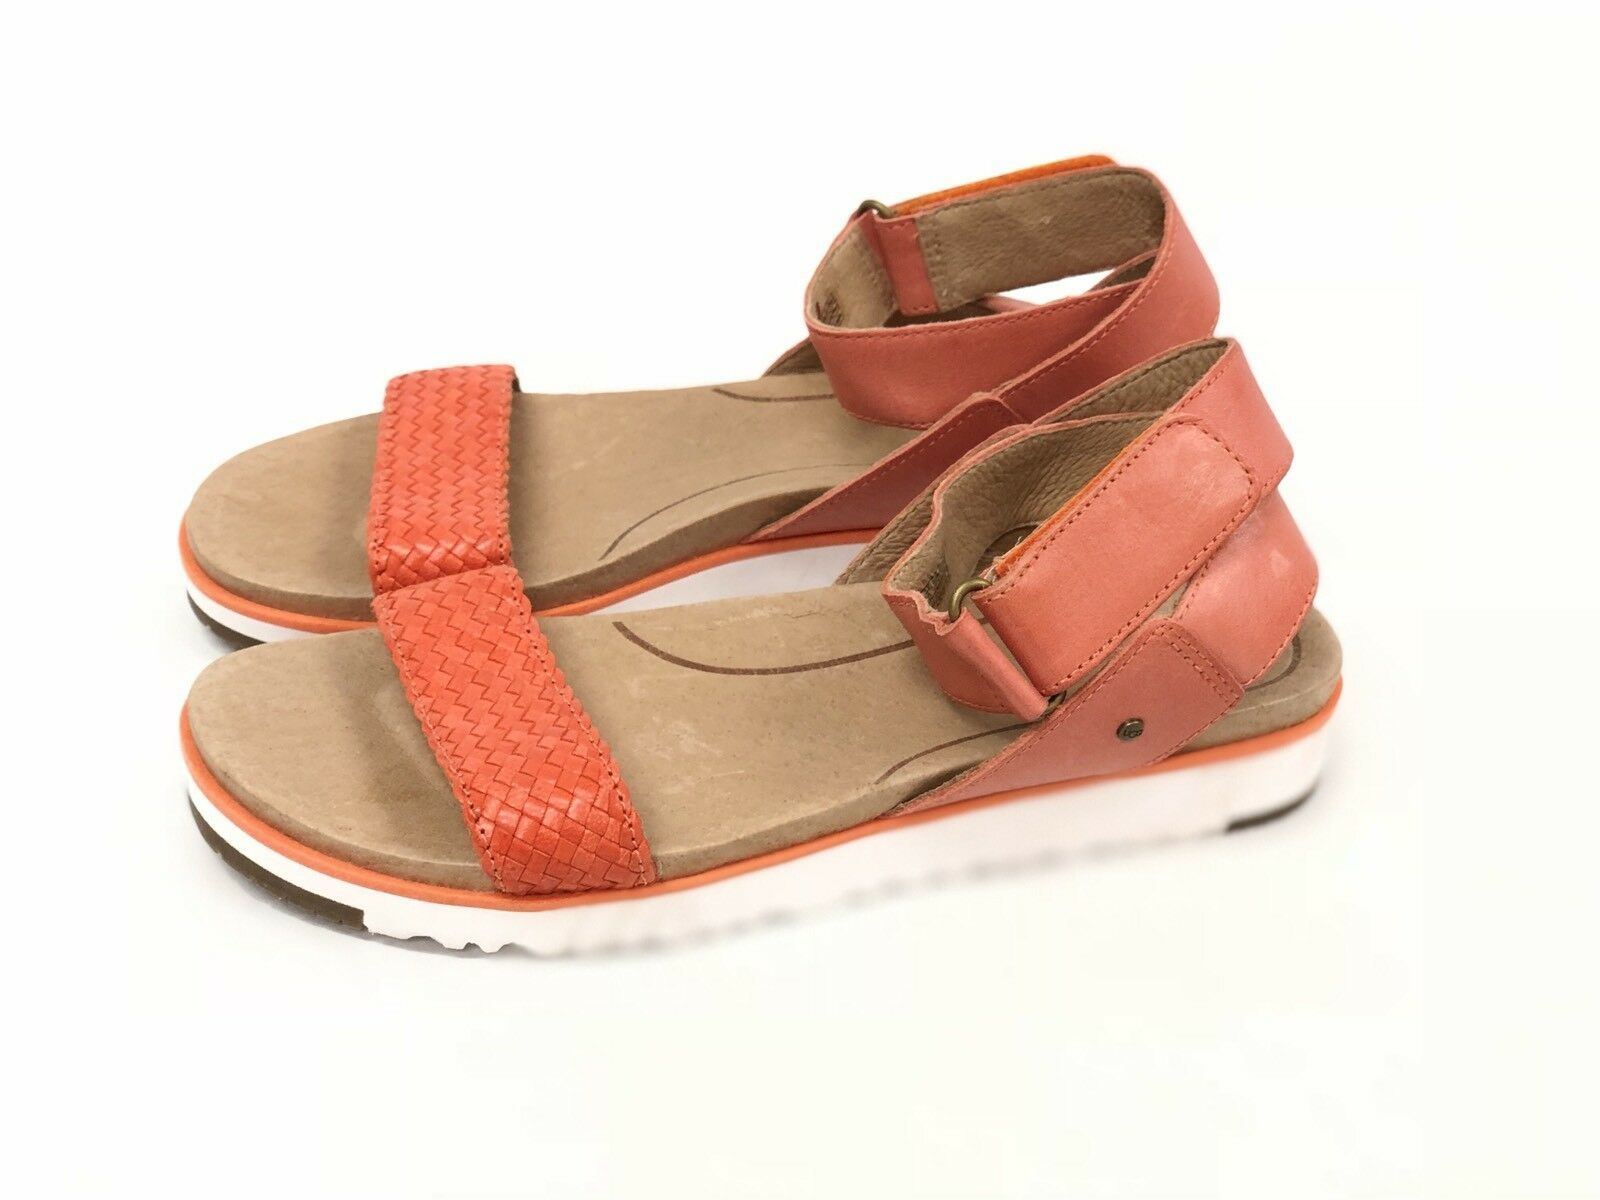 Ugg Australia Laddie Women's Ankle Strap Fire Opal Orange Sandal 1015669 Shoes image 8